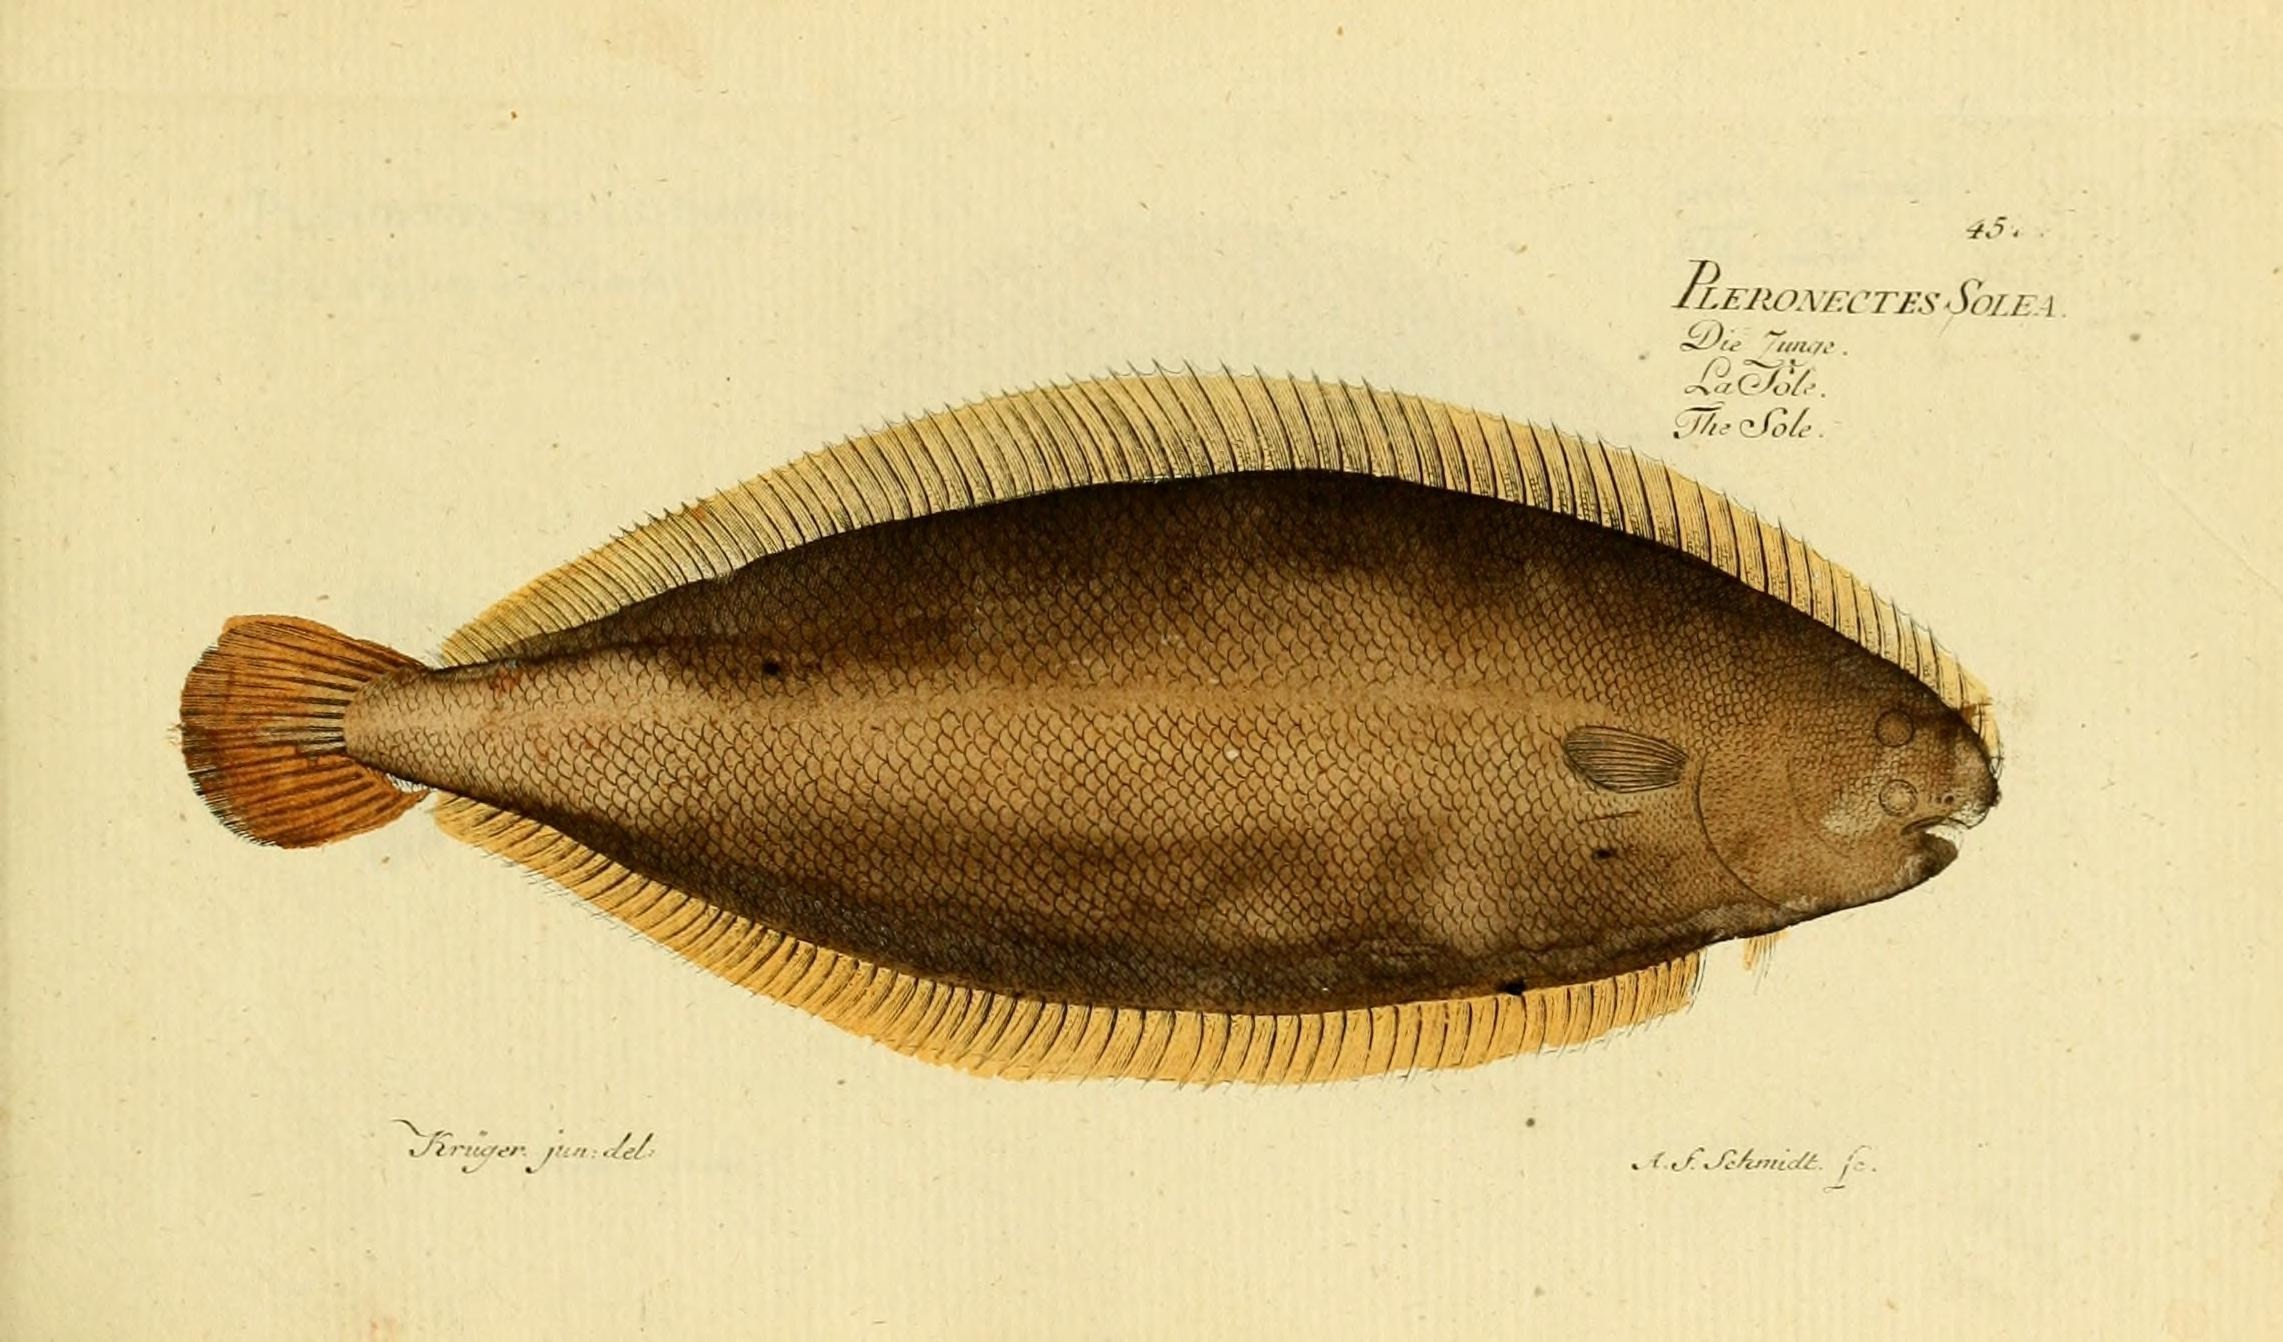 Image of sole